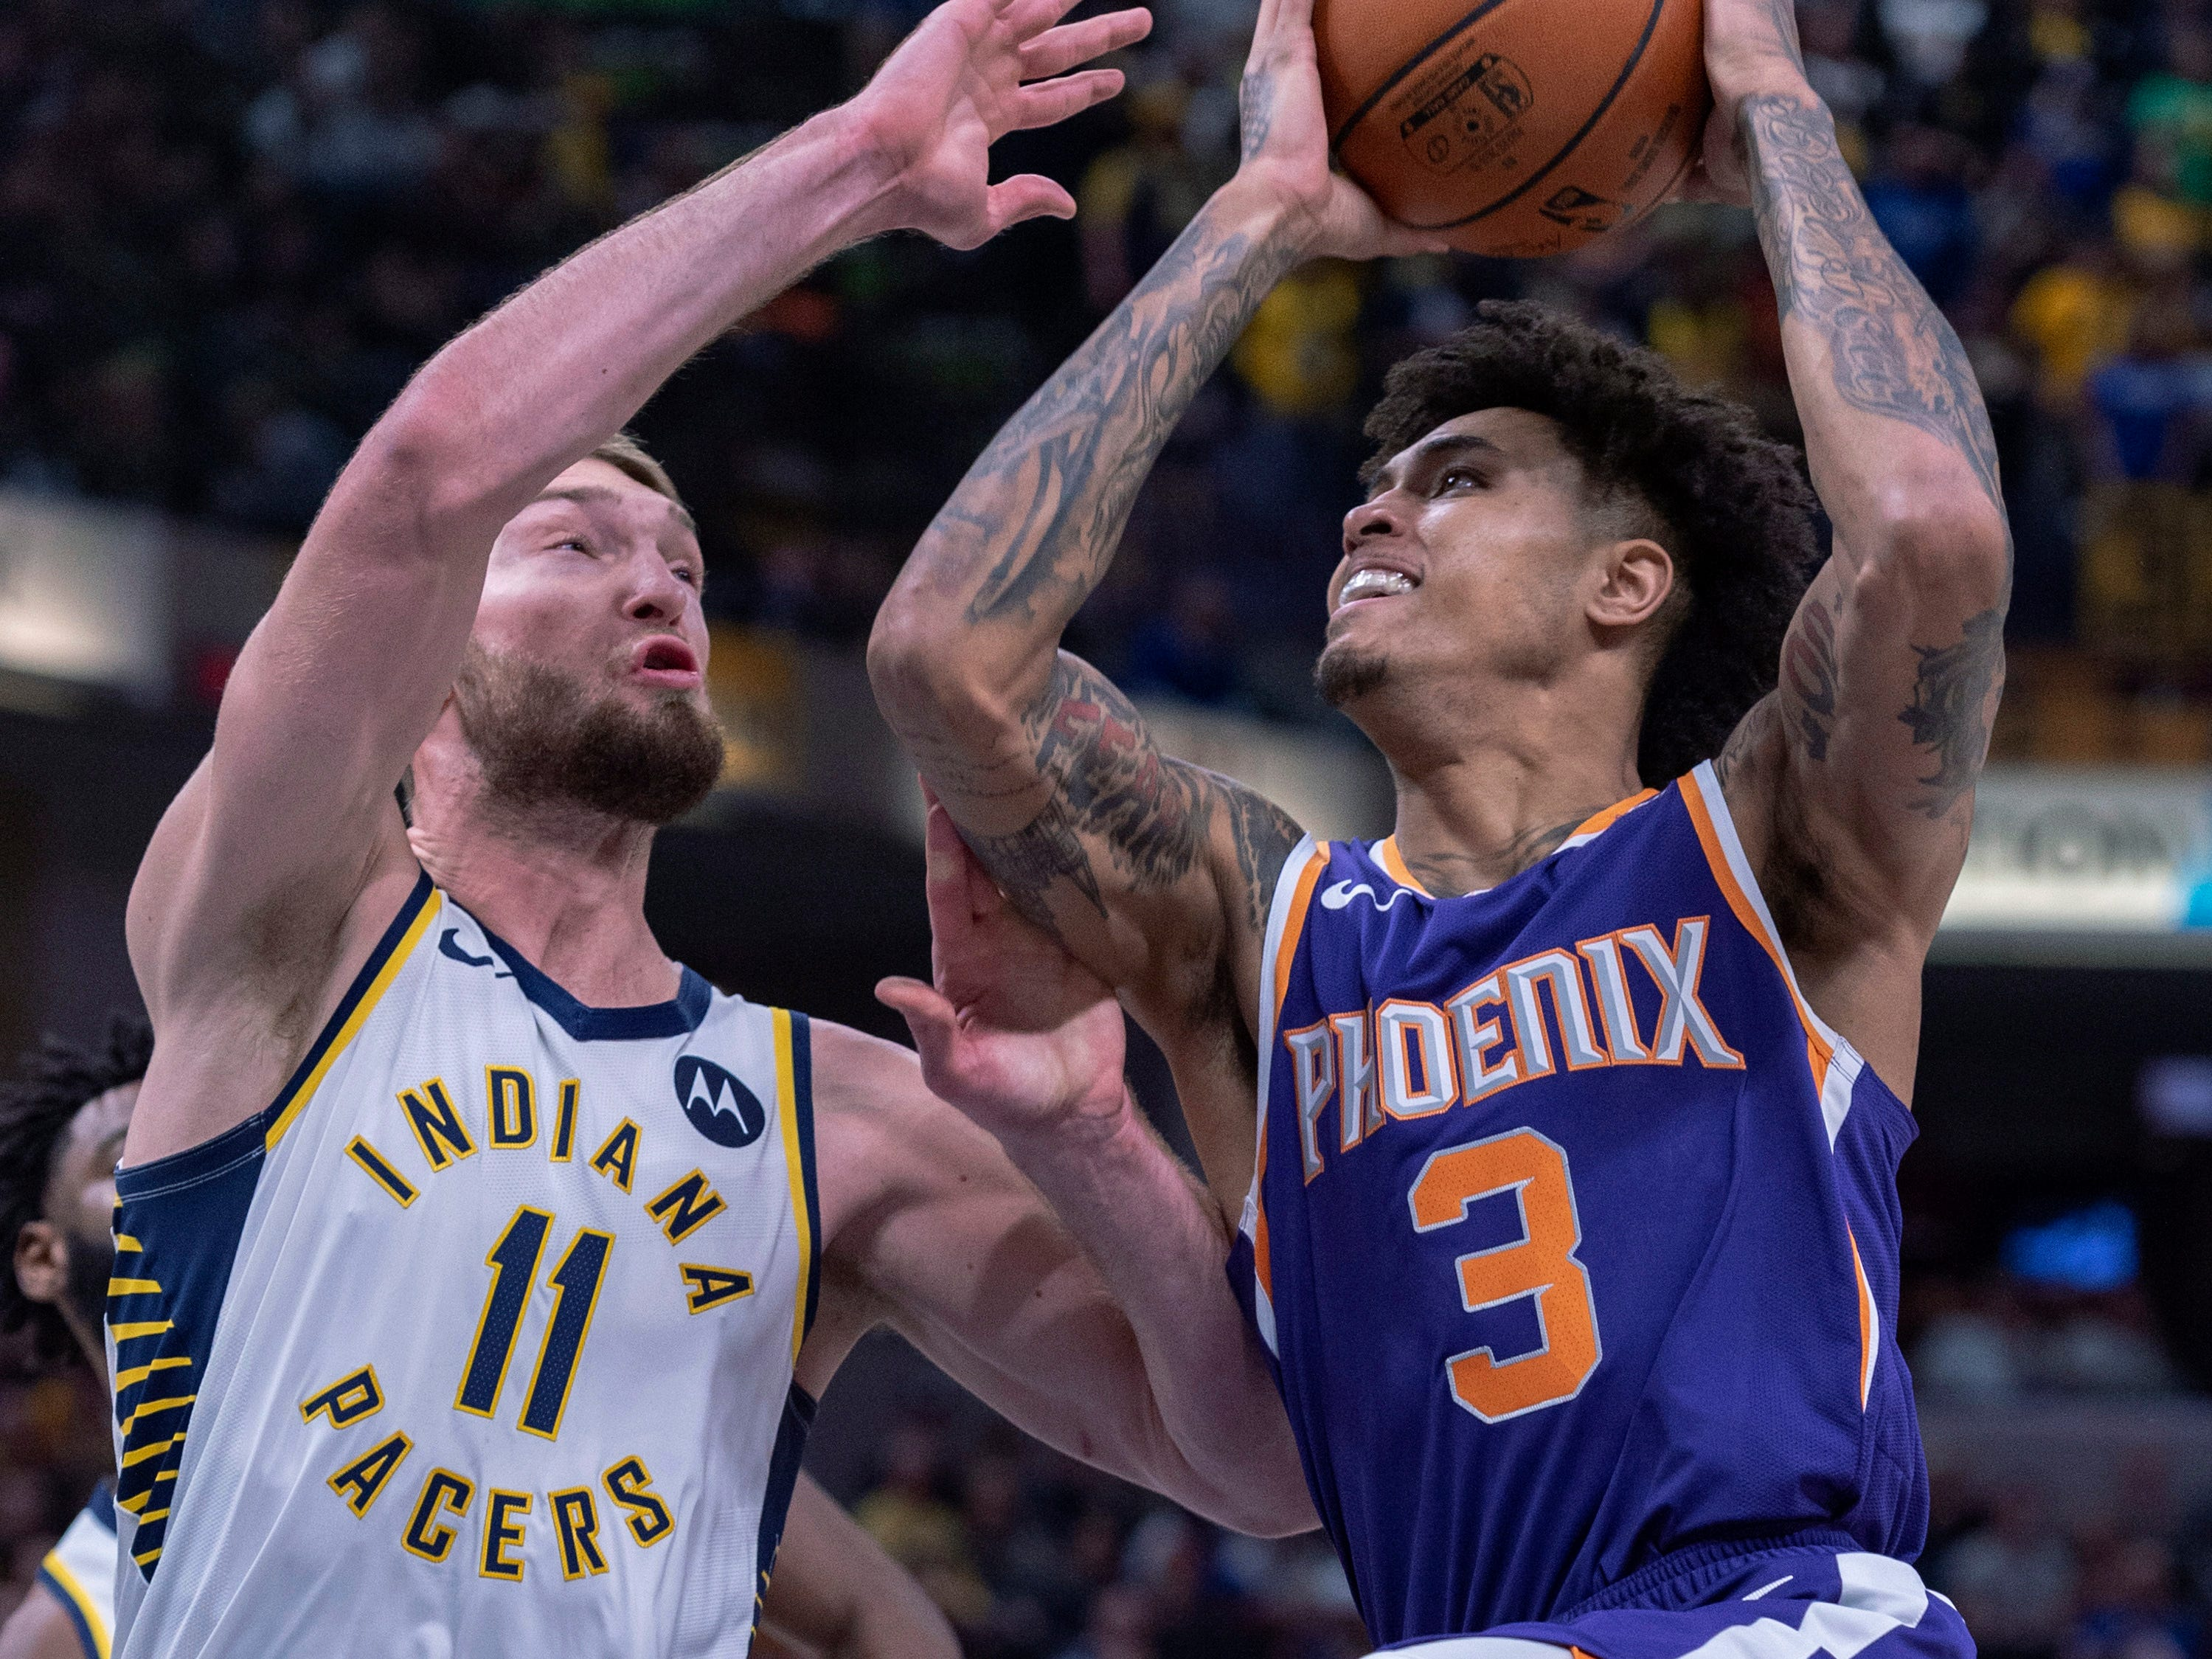 Phoenix Suns forward Kelly Oubre Jr. (3) is defended by Indiana Pacers forward Domantas Sabonis (11) during the first half of an NBA basketball game Tuesday, Jan. 15, 2019, in Indianapolis.